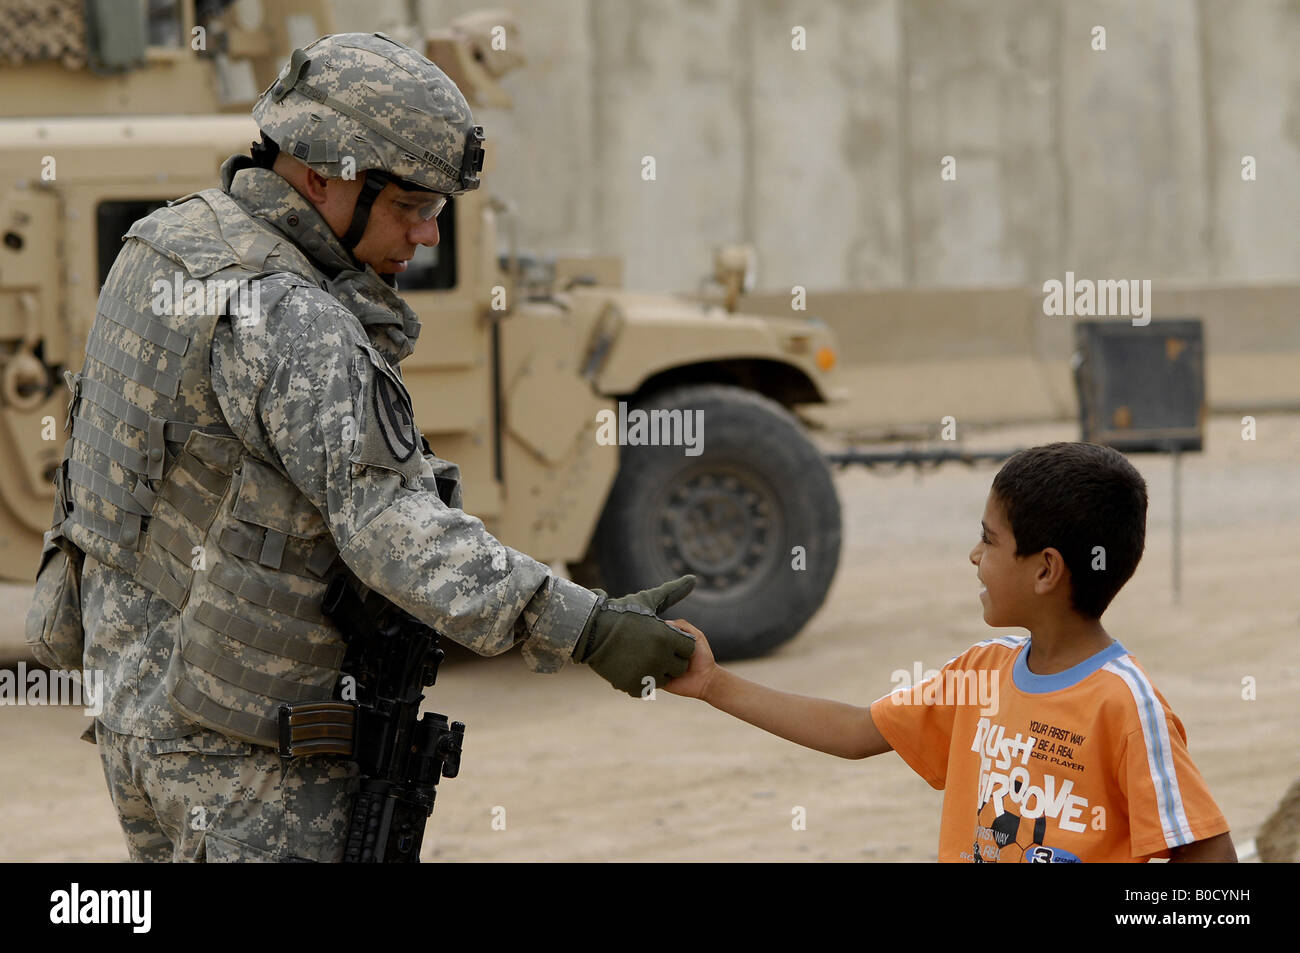 U S Army Maj Robert Rodriguez shakes hands with a local child during a visit to the market in Taji Iraq - Stock Image